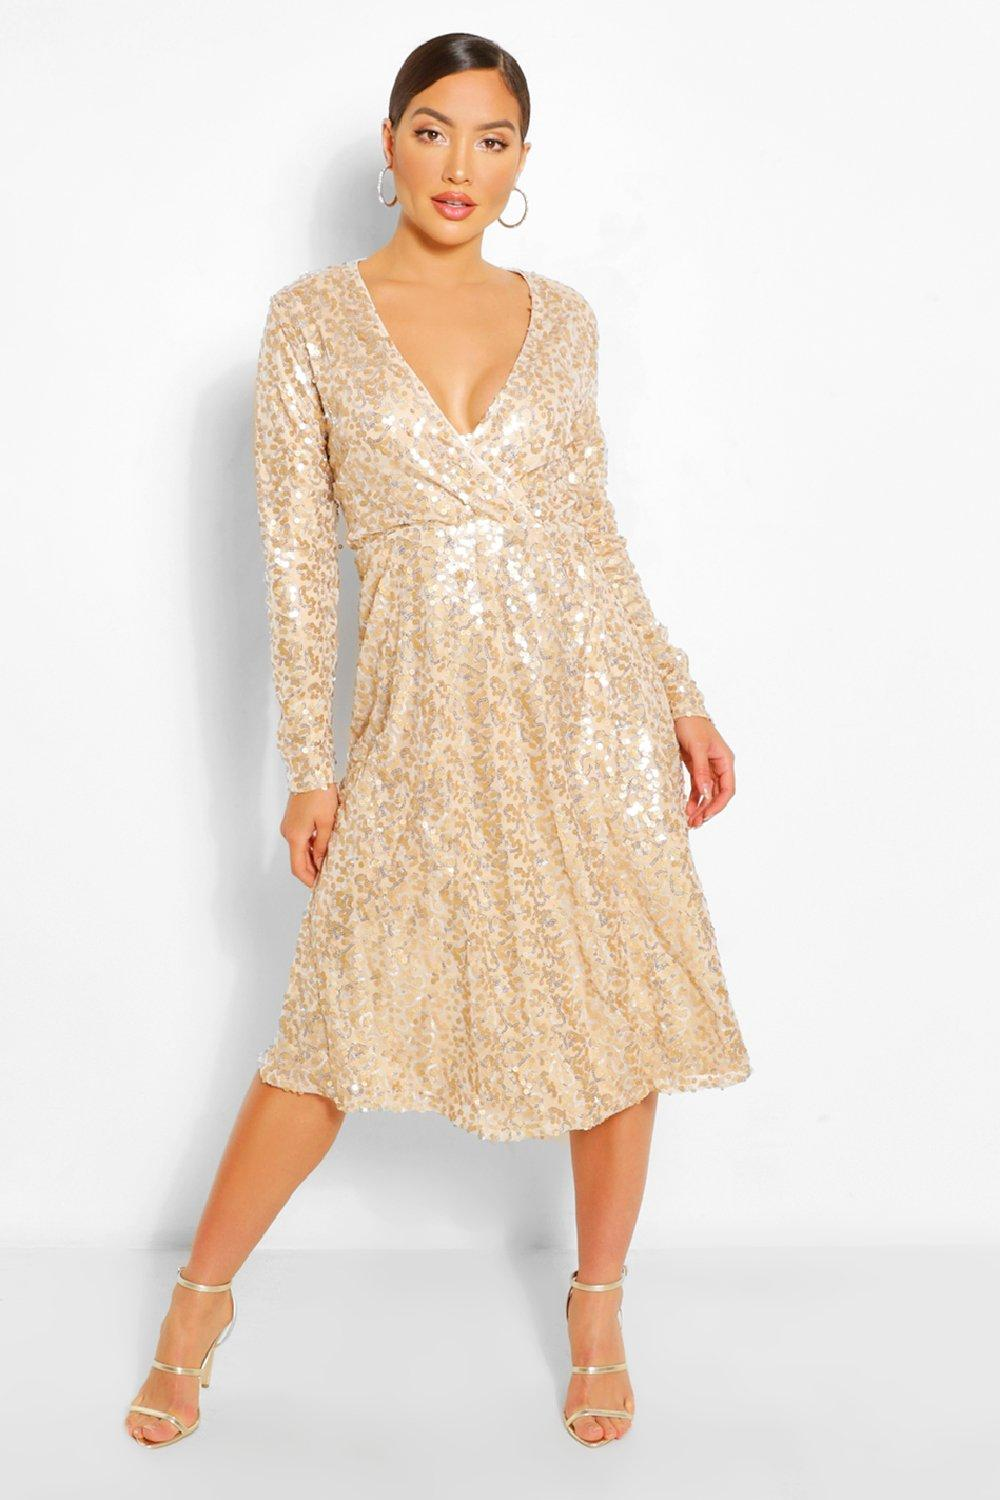 70s Prom, Formal, Evening, Party Dresses Womens Boutique Sequin Wrap Midi Dress - Beige - 8 $22.00 AT vintagedancer.com